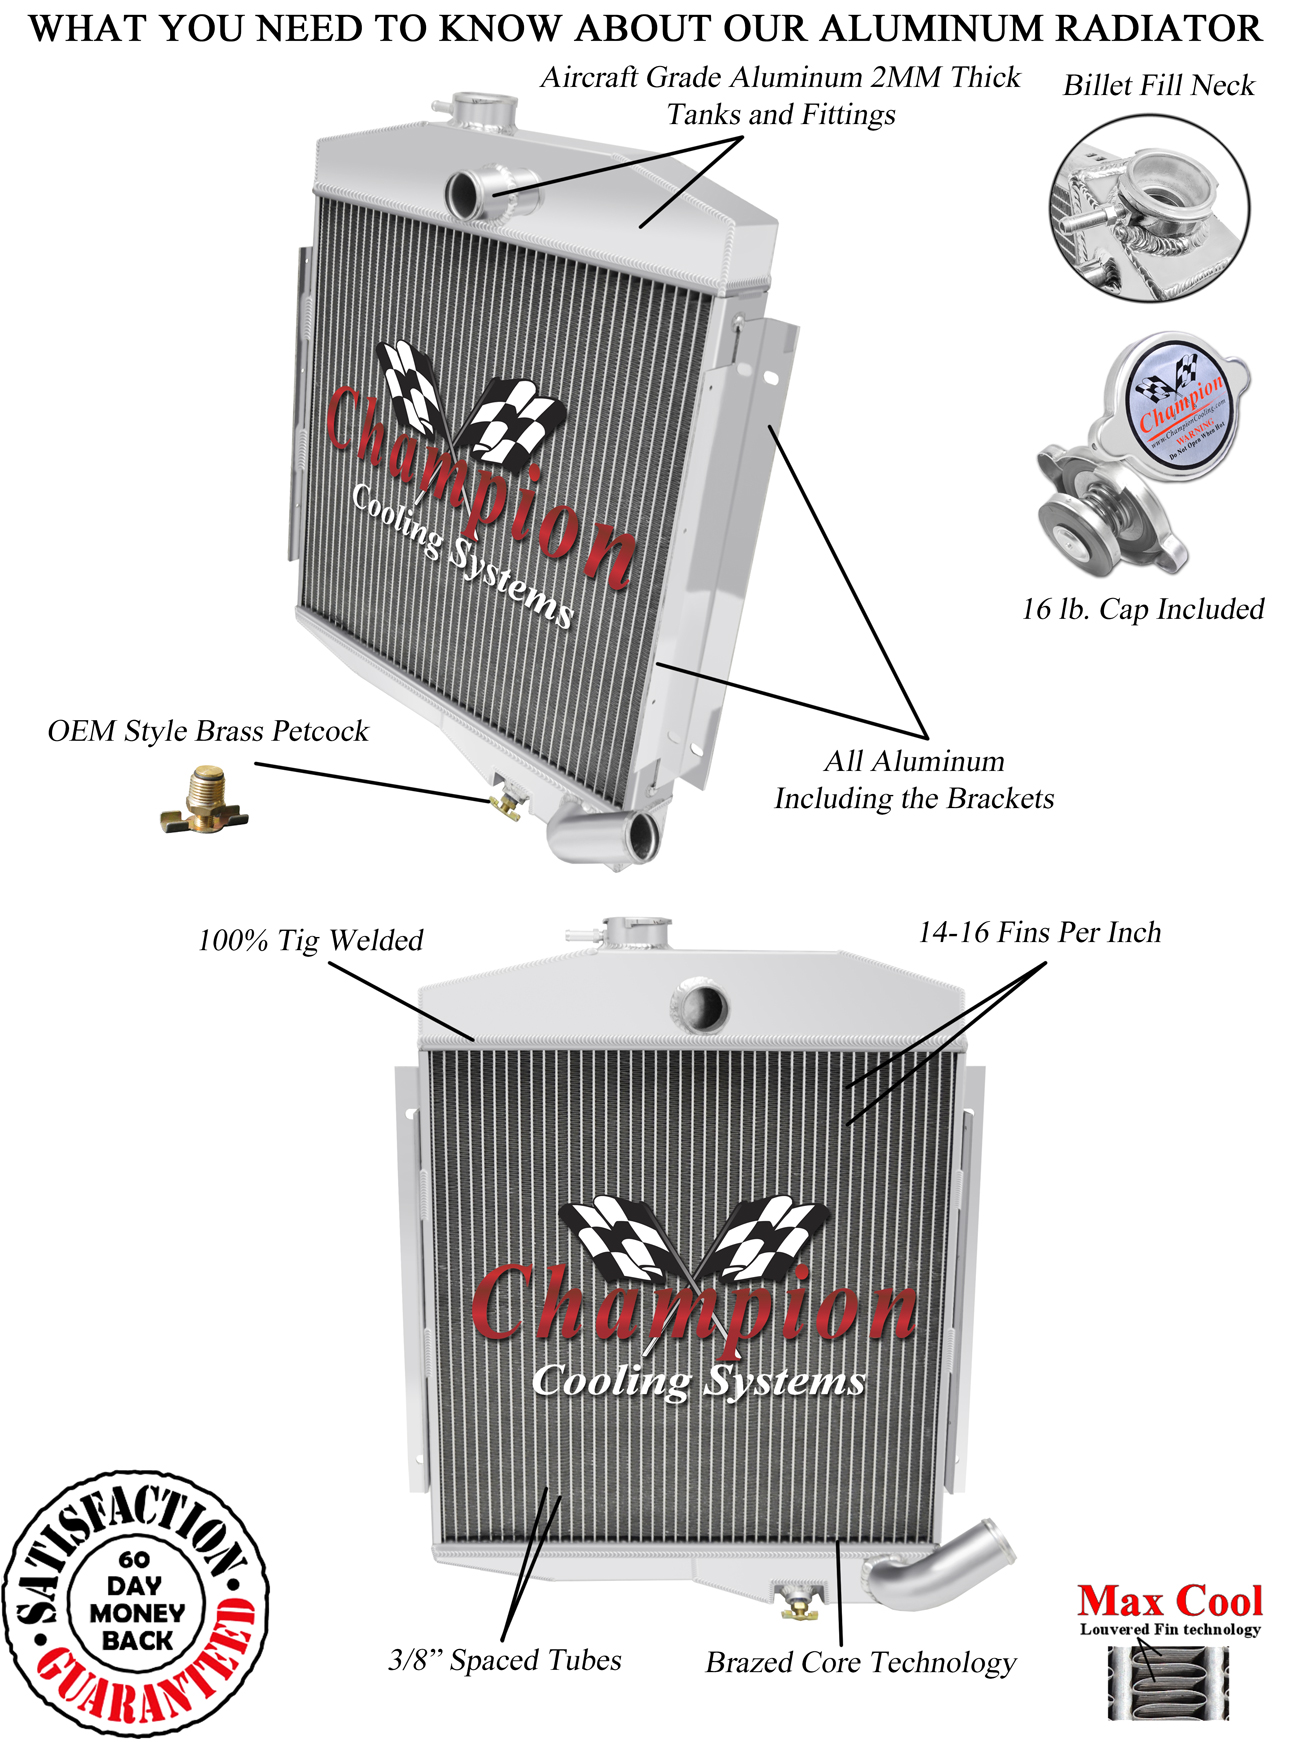 https://www.championcooling.com/images/radiators/diagram/6571.jpg